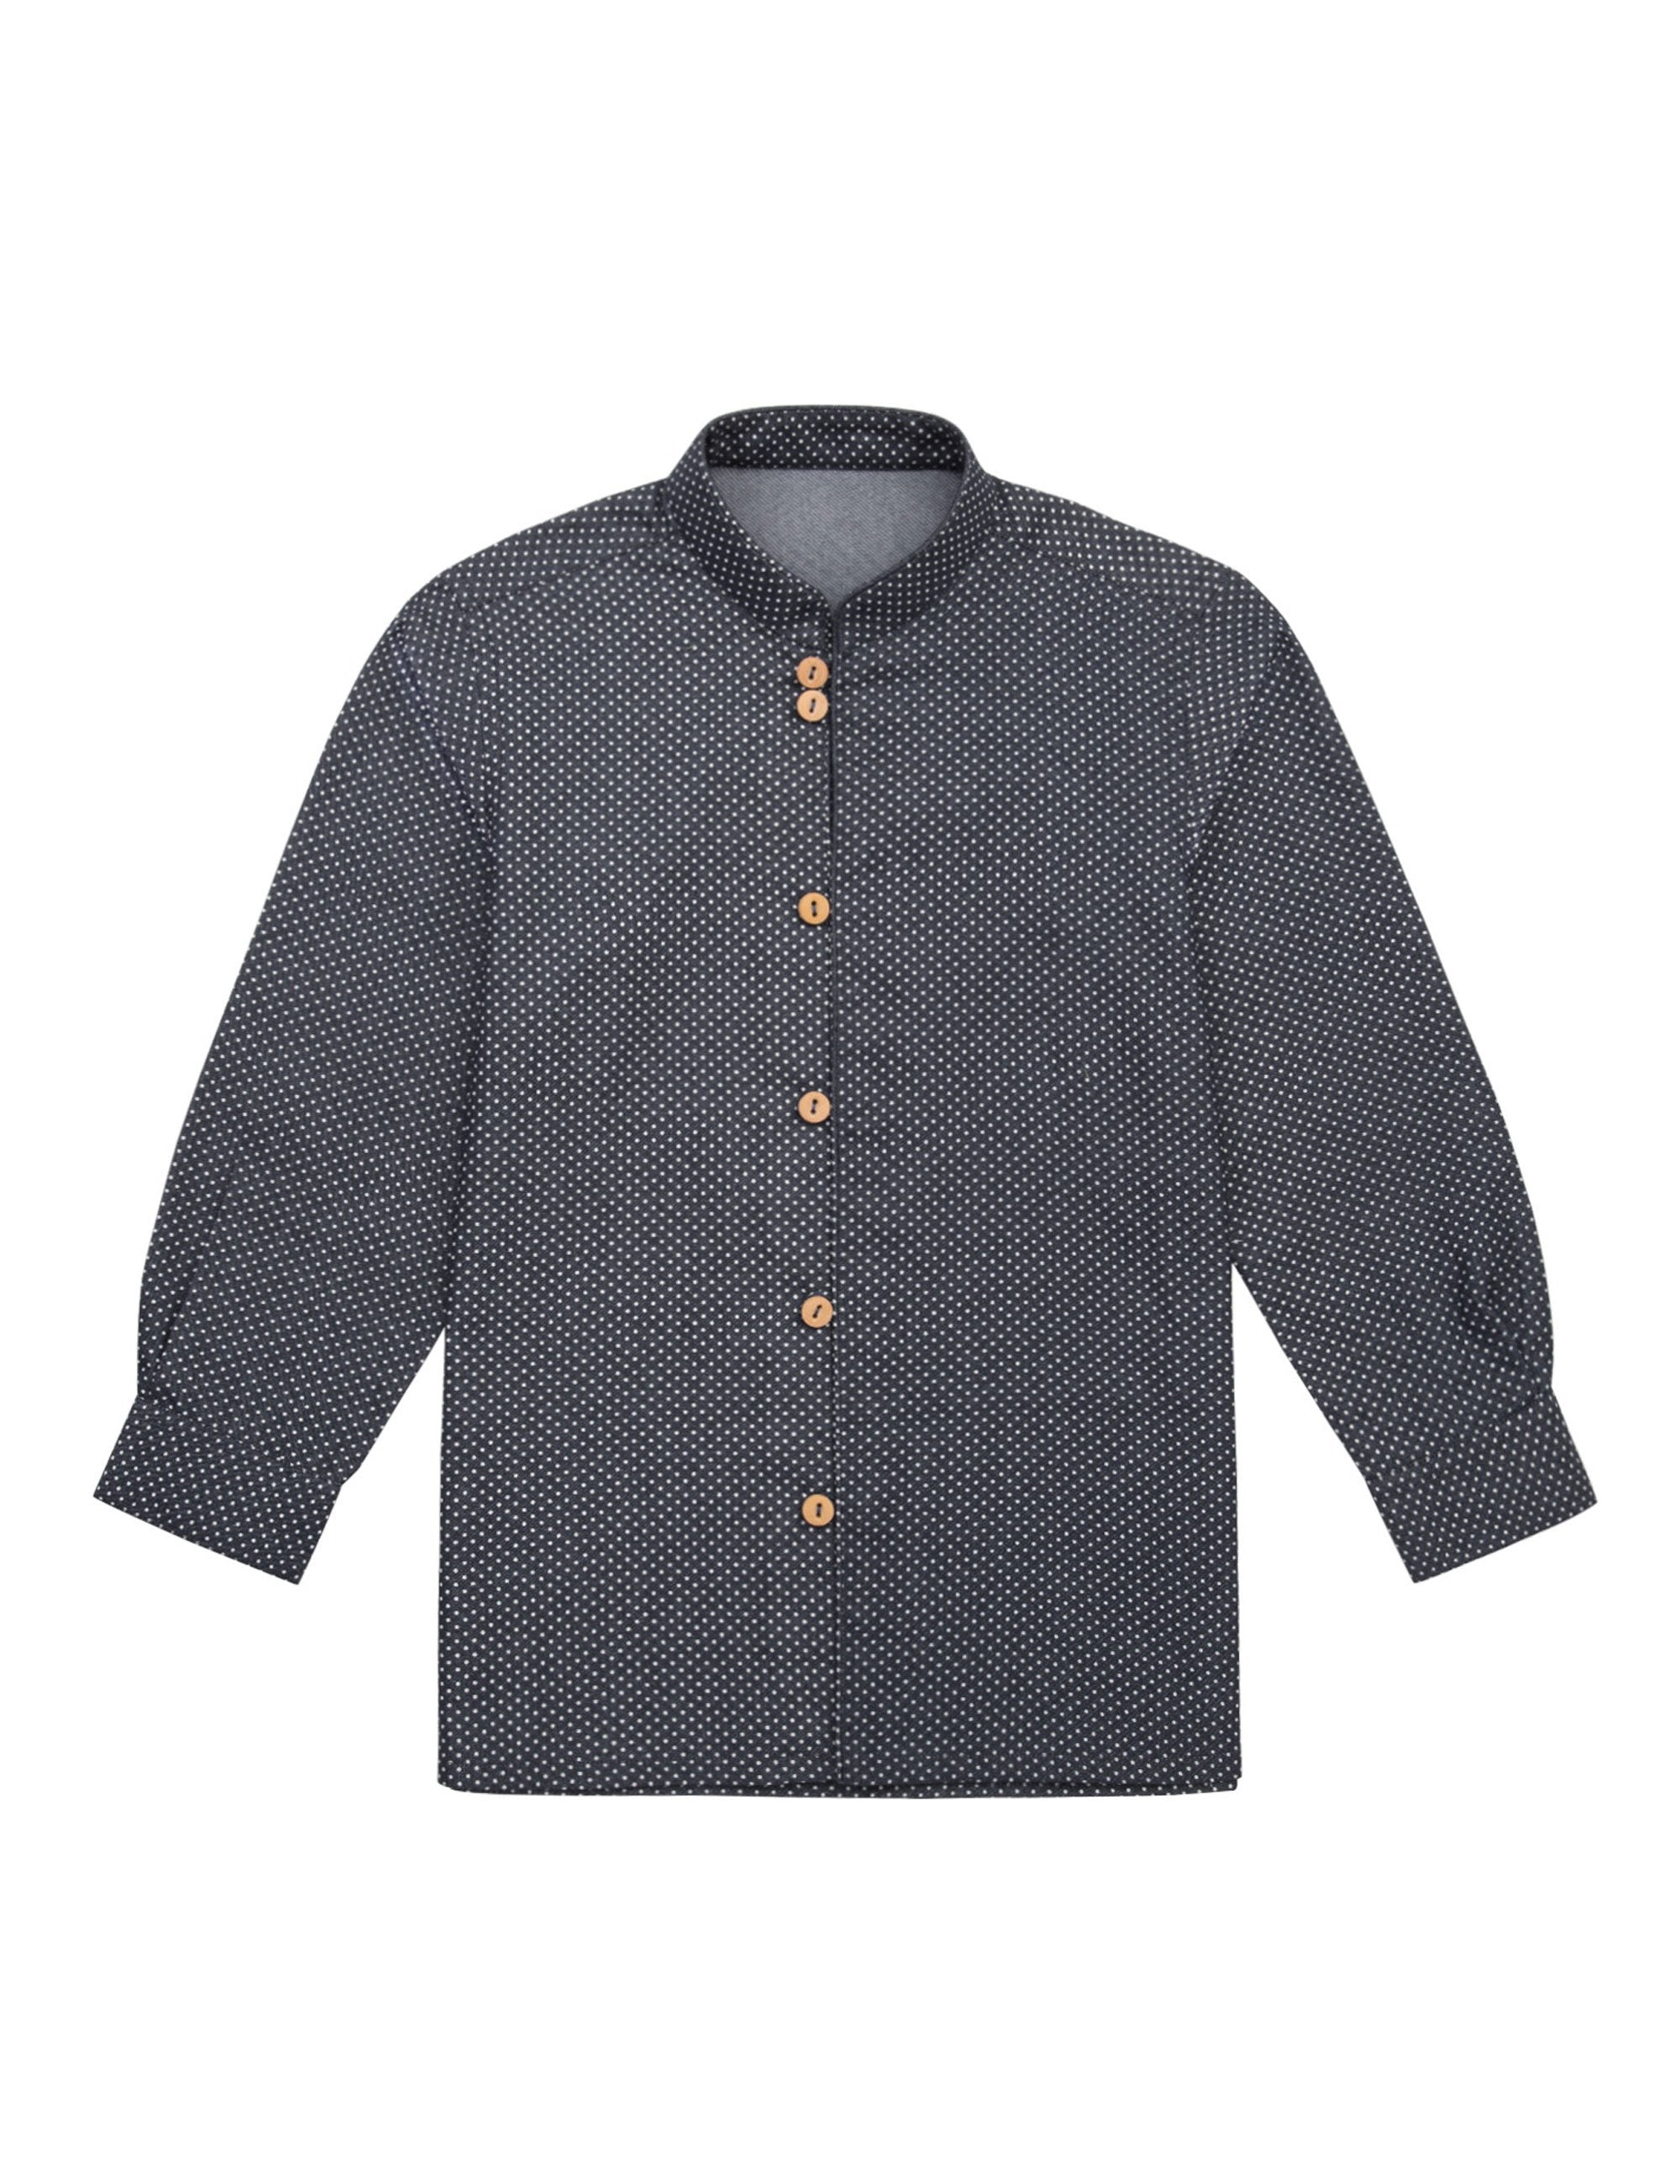 Oscar Shirt in Blue Colour for Boys